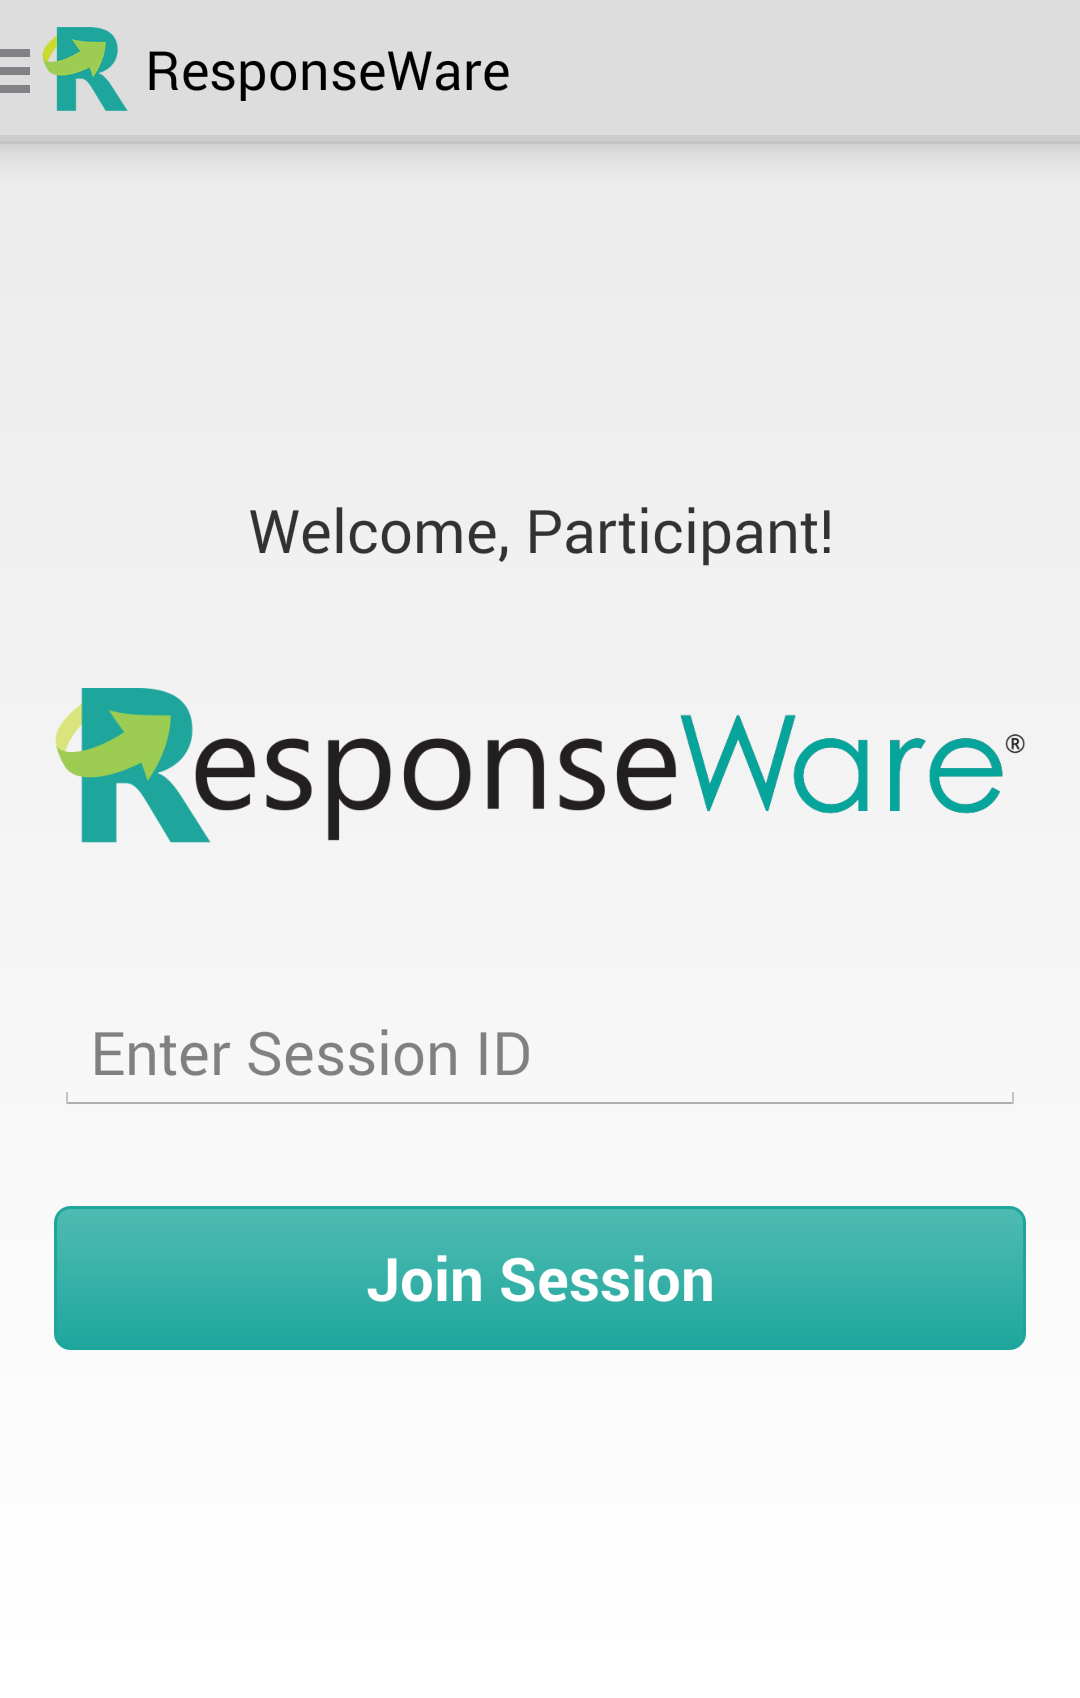 ResponseWare for Android Participants Guide 4 Using the ResponseWare App This section covers using the ResponseWare app for Android.